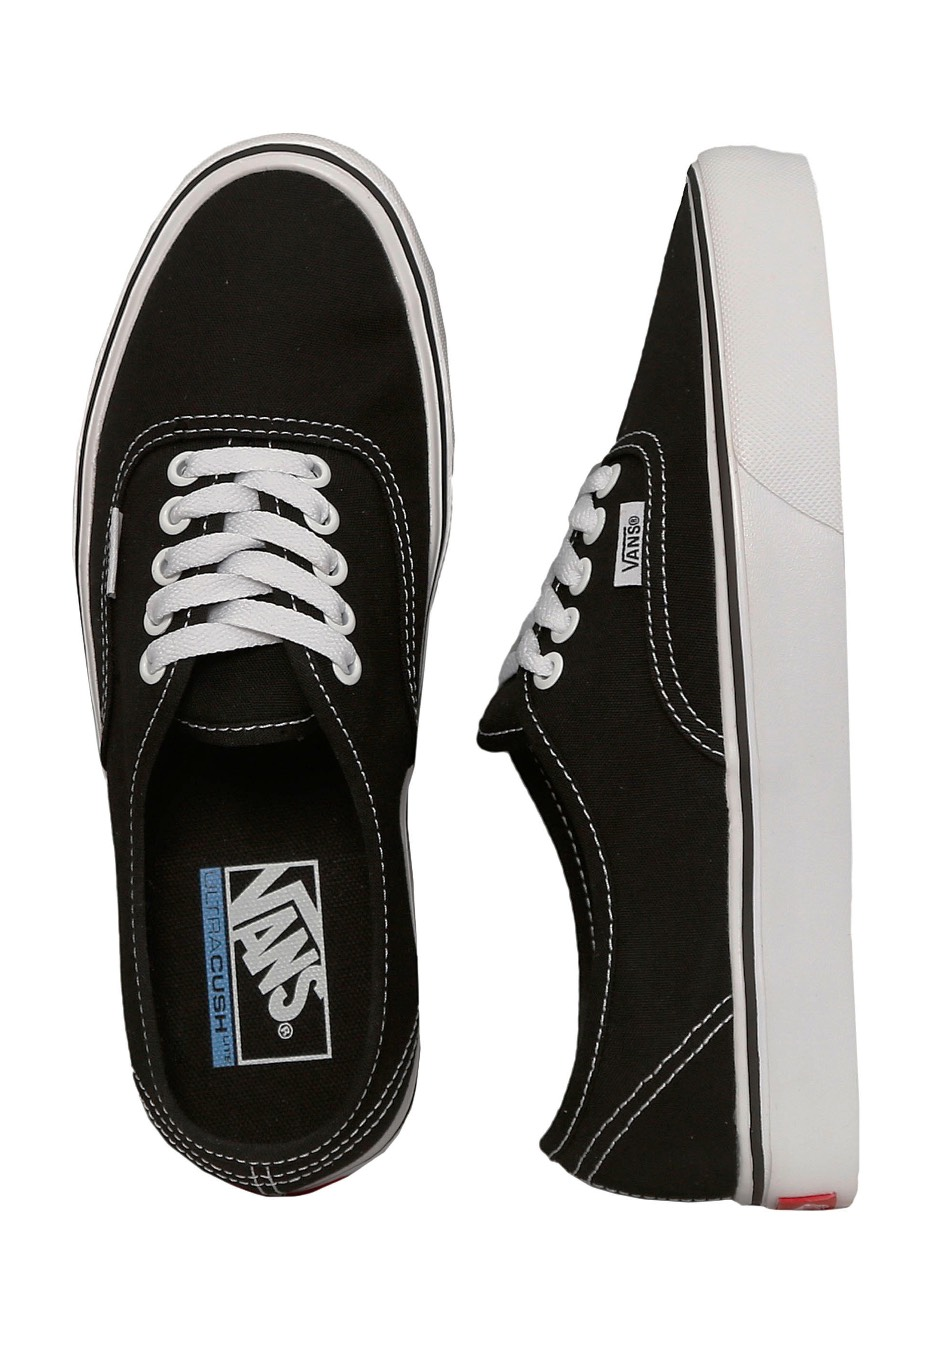 Vans - Authentic Lite Canvas Black/White - Schuhe